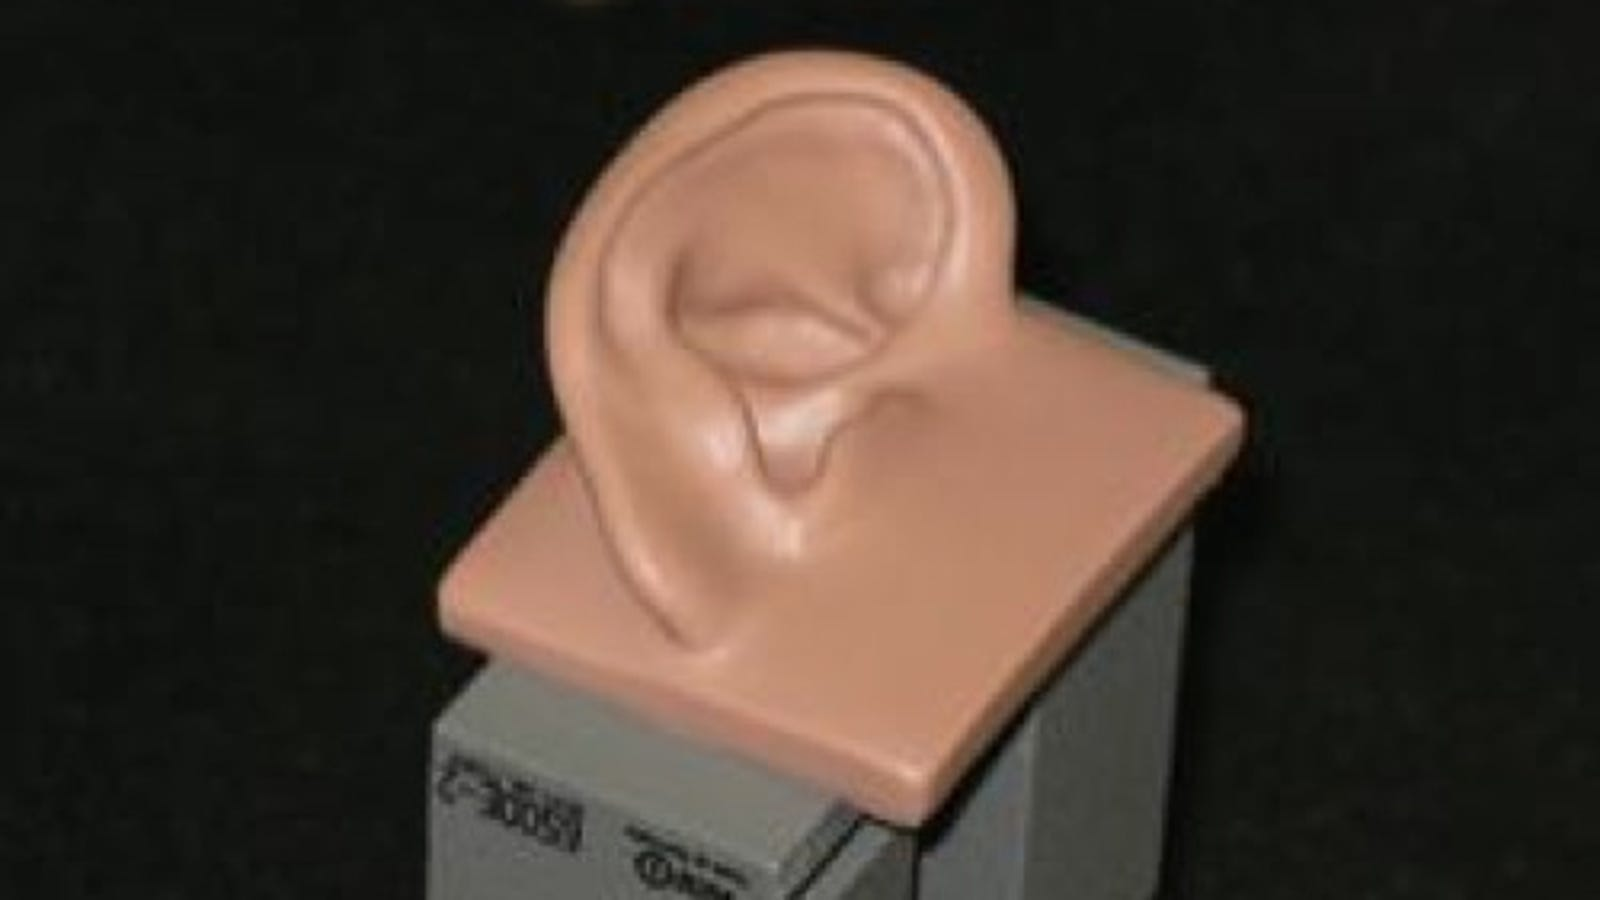 phillips earbuds shq1200 - Researchers Claim They've Created the Perfect 3D Human Ear Model